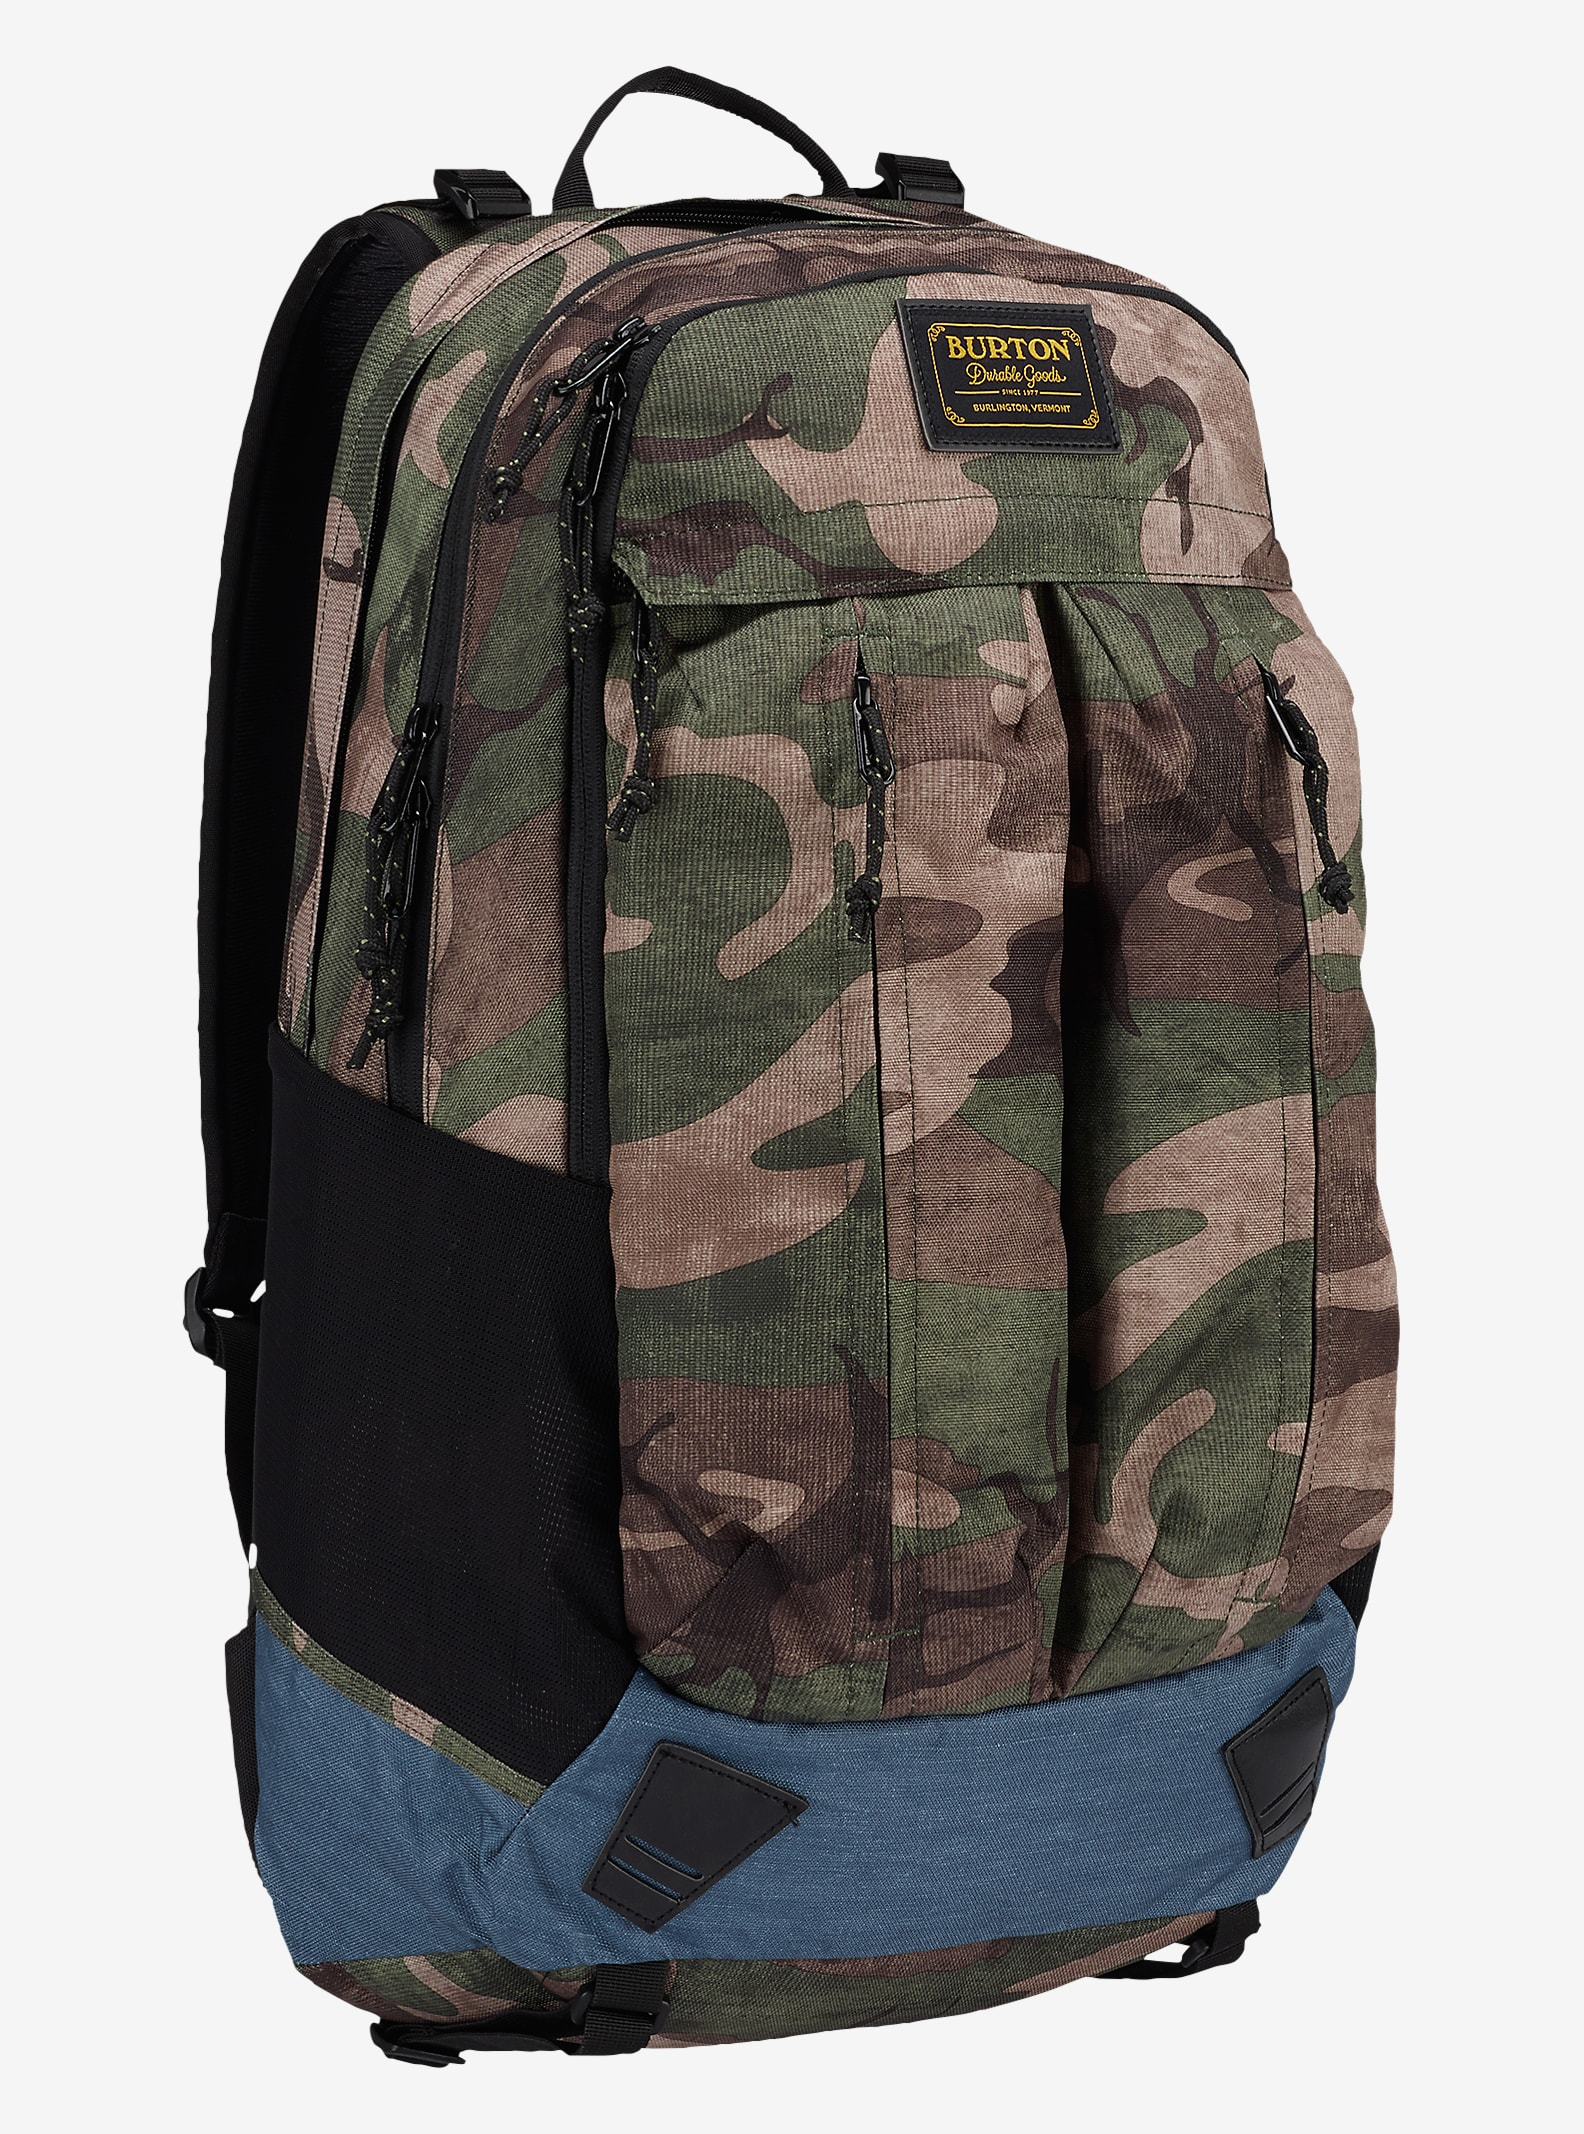 Burton Bravo Backpack shown in Bkamo Print